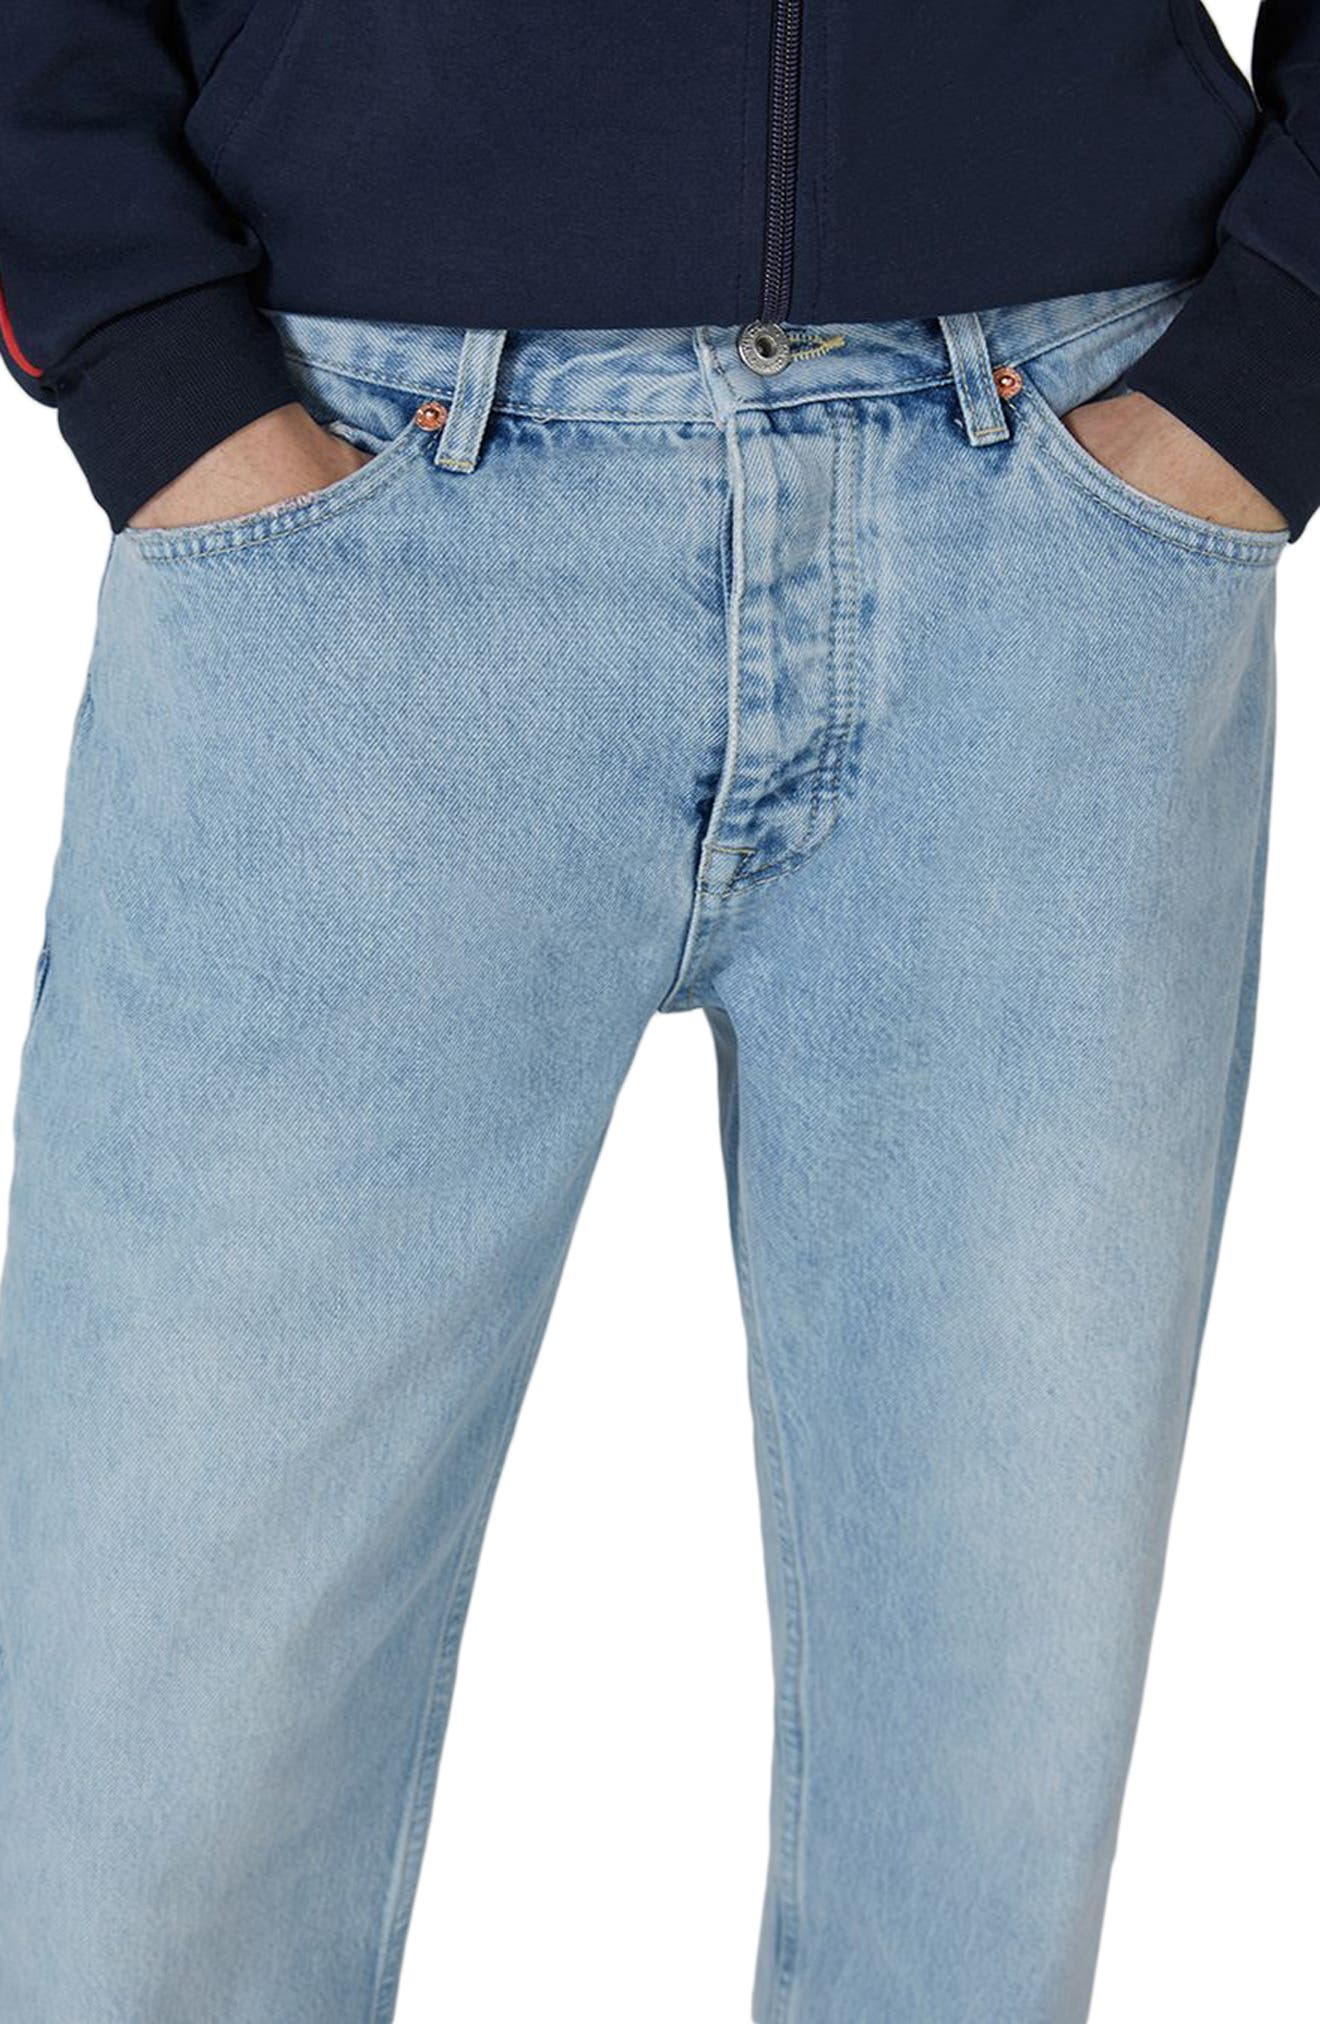 Original Fit Jeans,                             Alternate thumbnail 3, color,                             BLUE